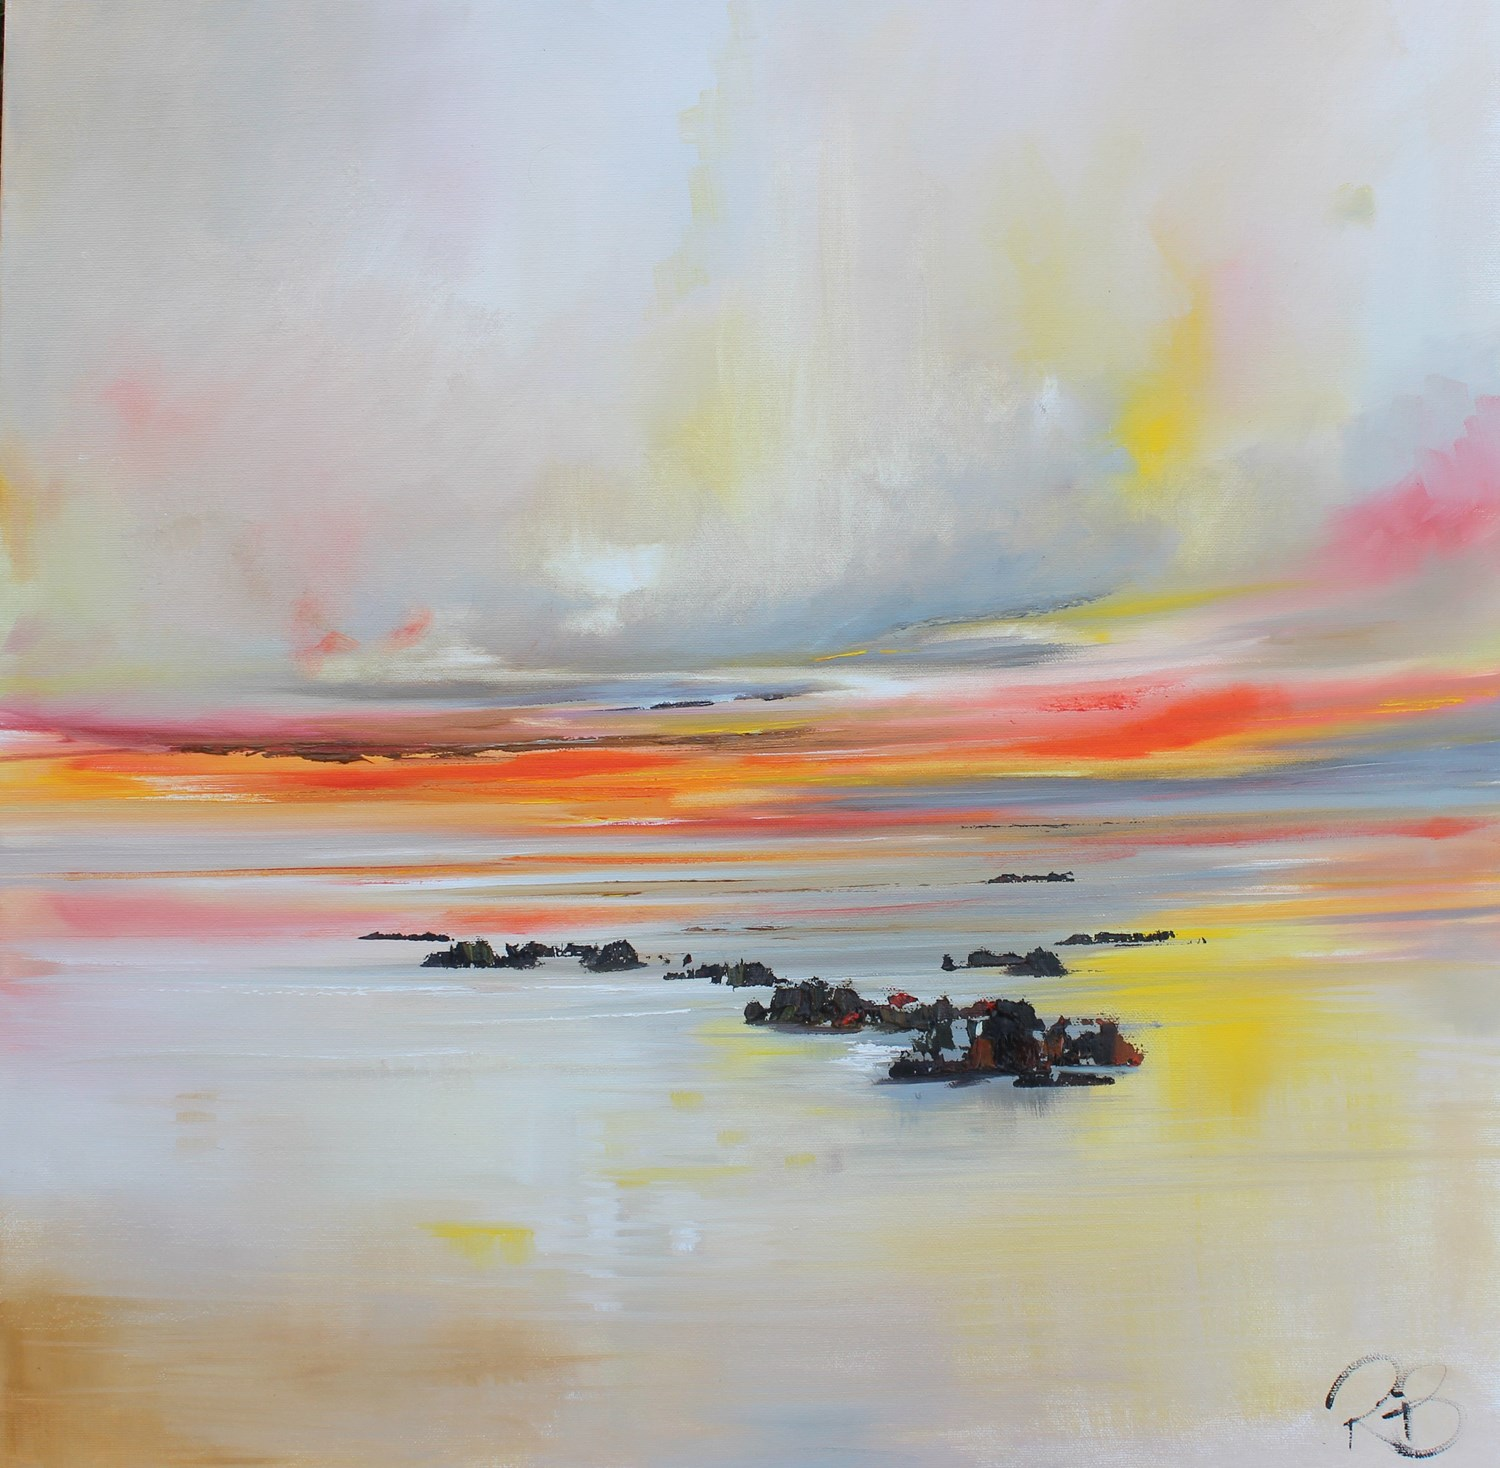 'Waiting on the Tide to turn' by artist Rosanne Barr